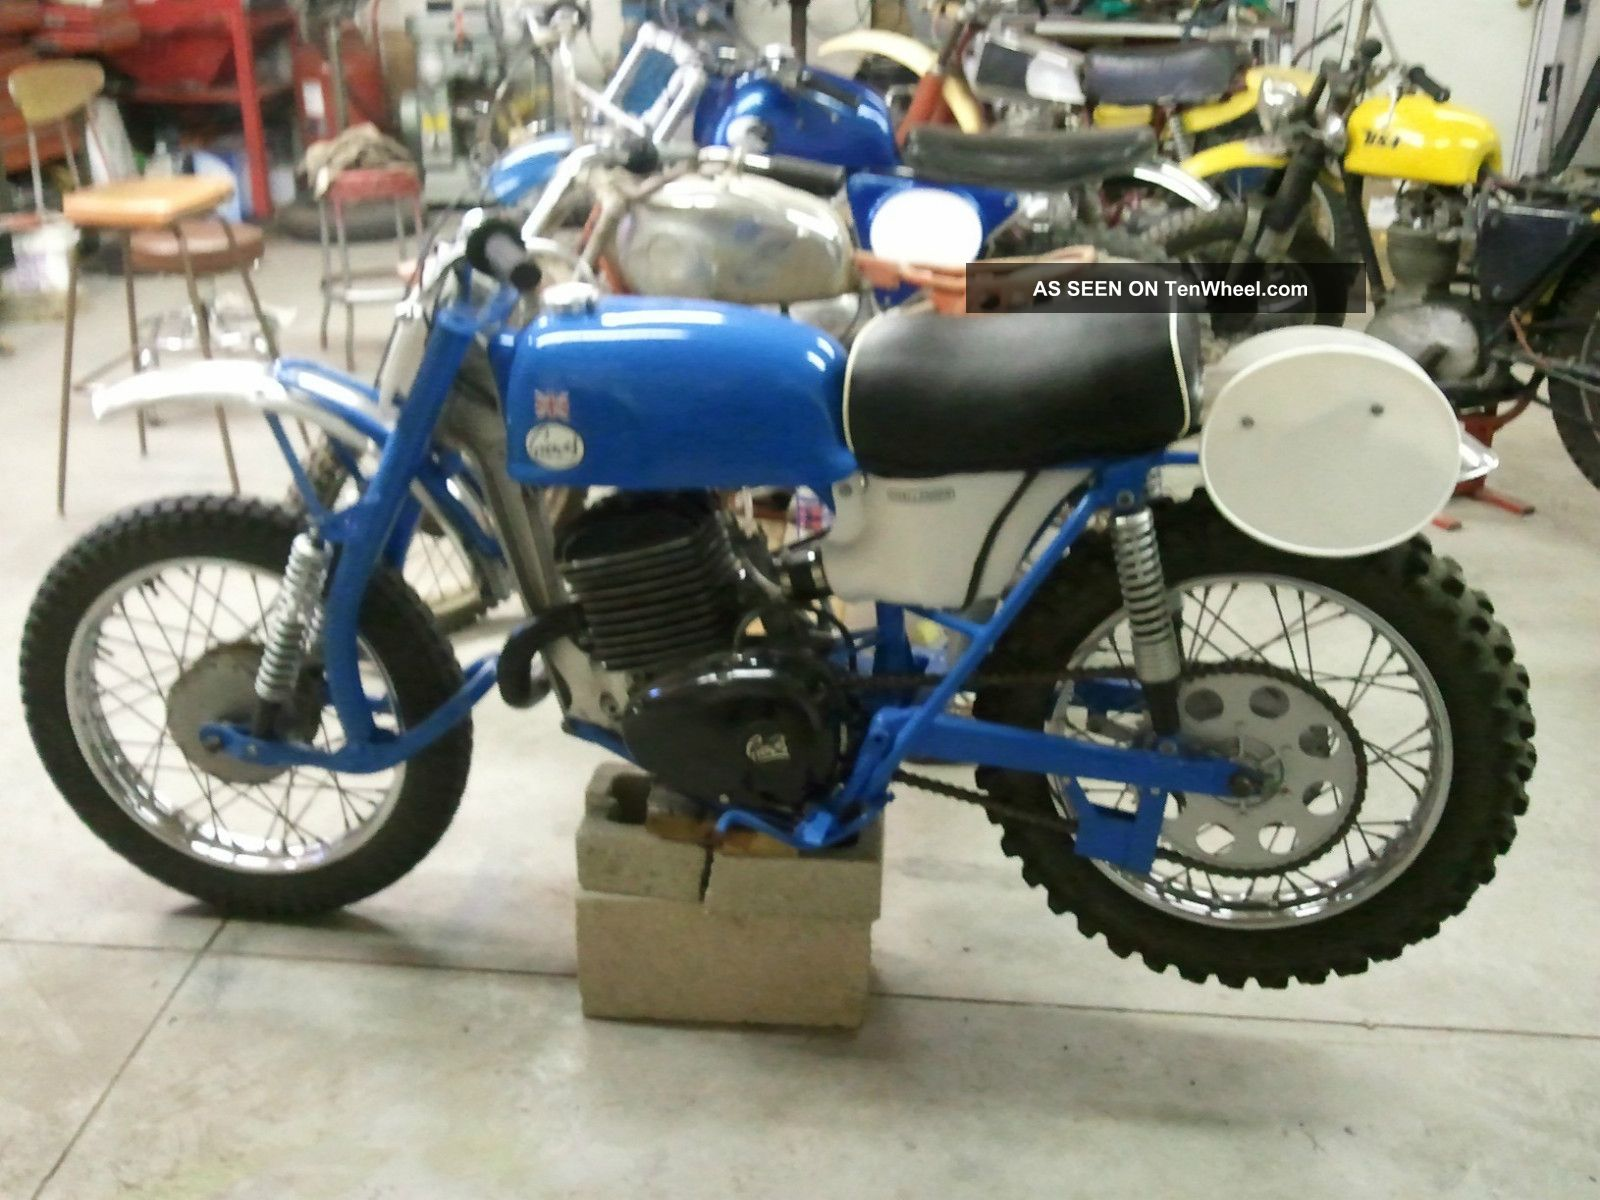 1968 Mx5 Greeves 250 Challenger Out Of My Personal Collection Greeves photo